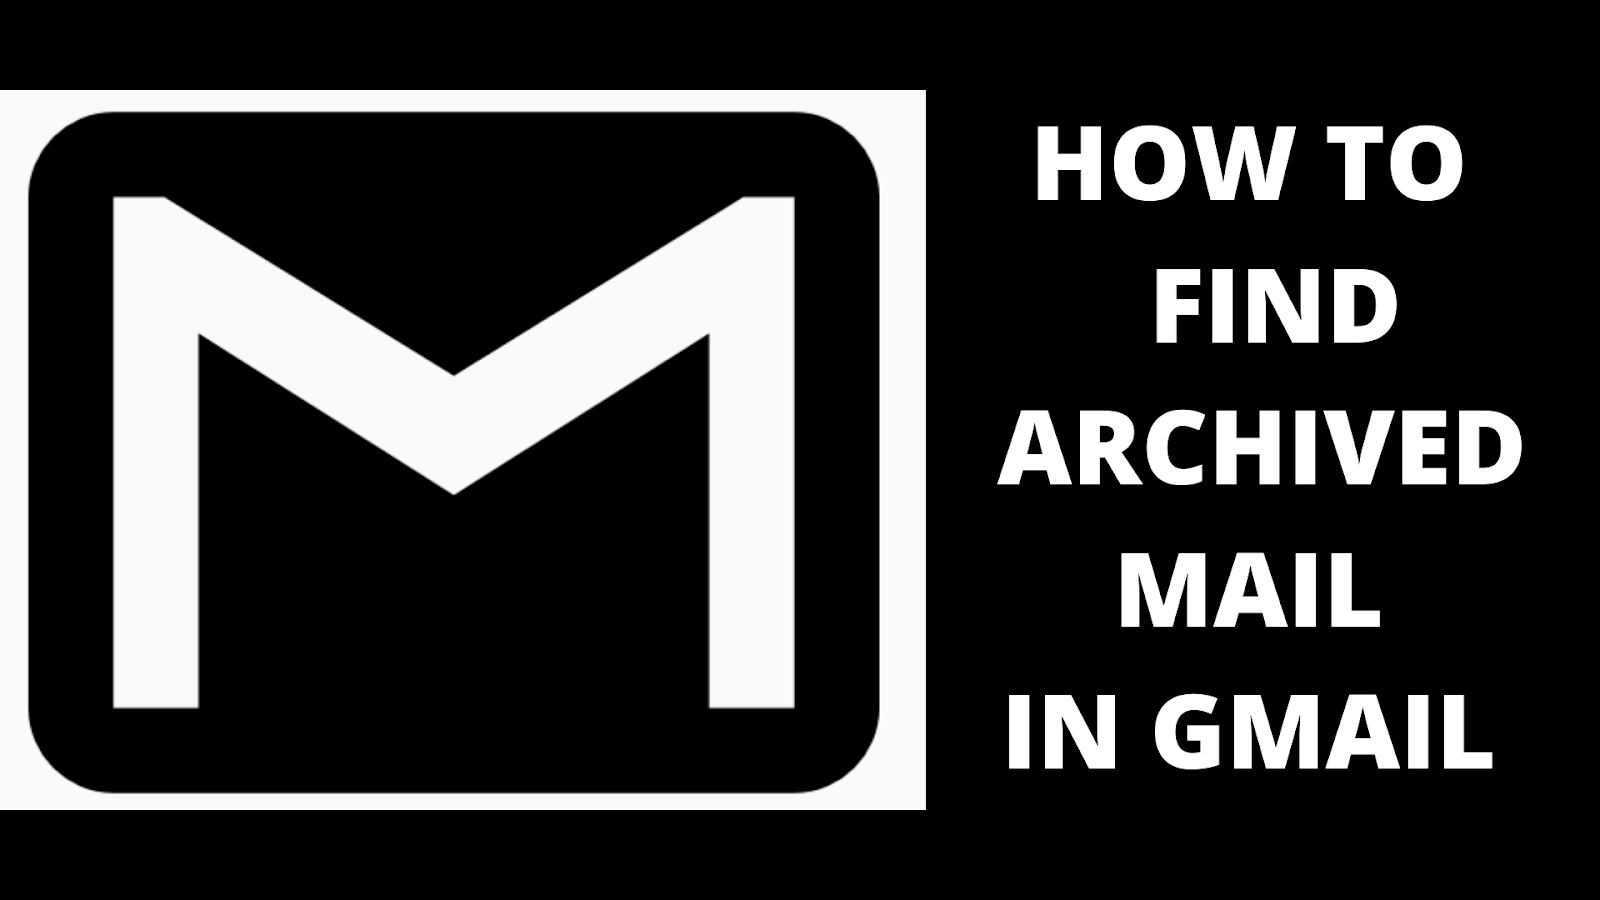 How to Do Find Archived Mail in Gmail 2020